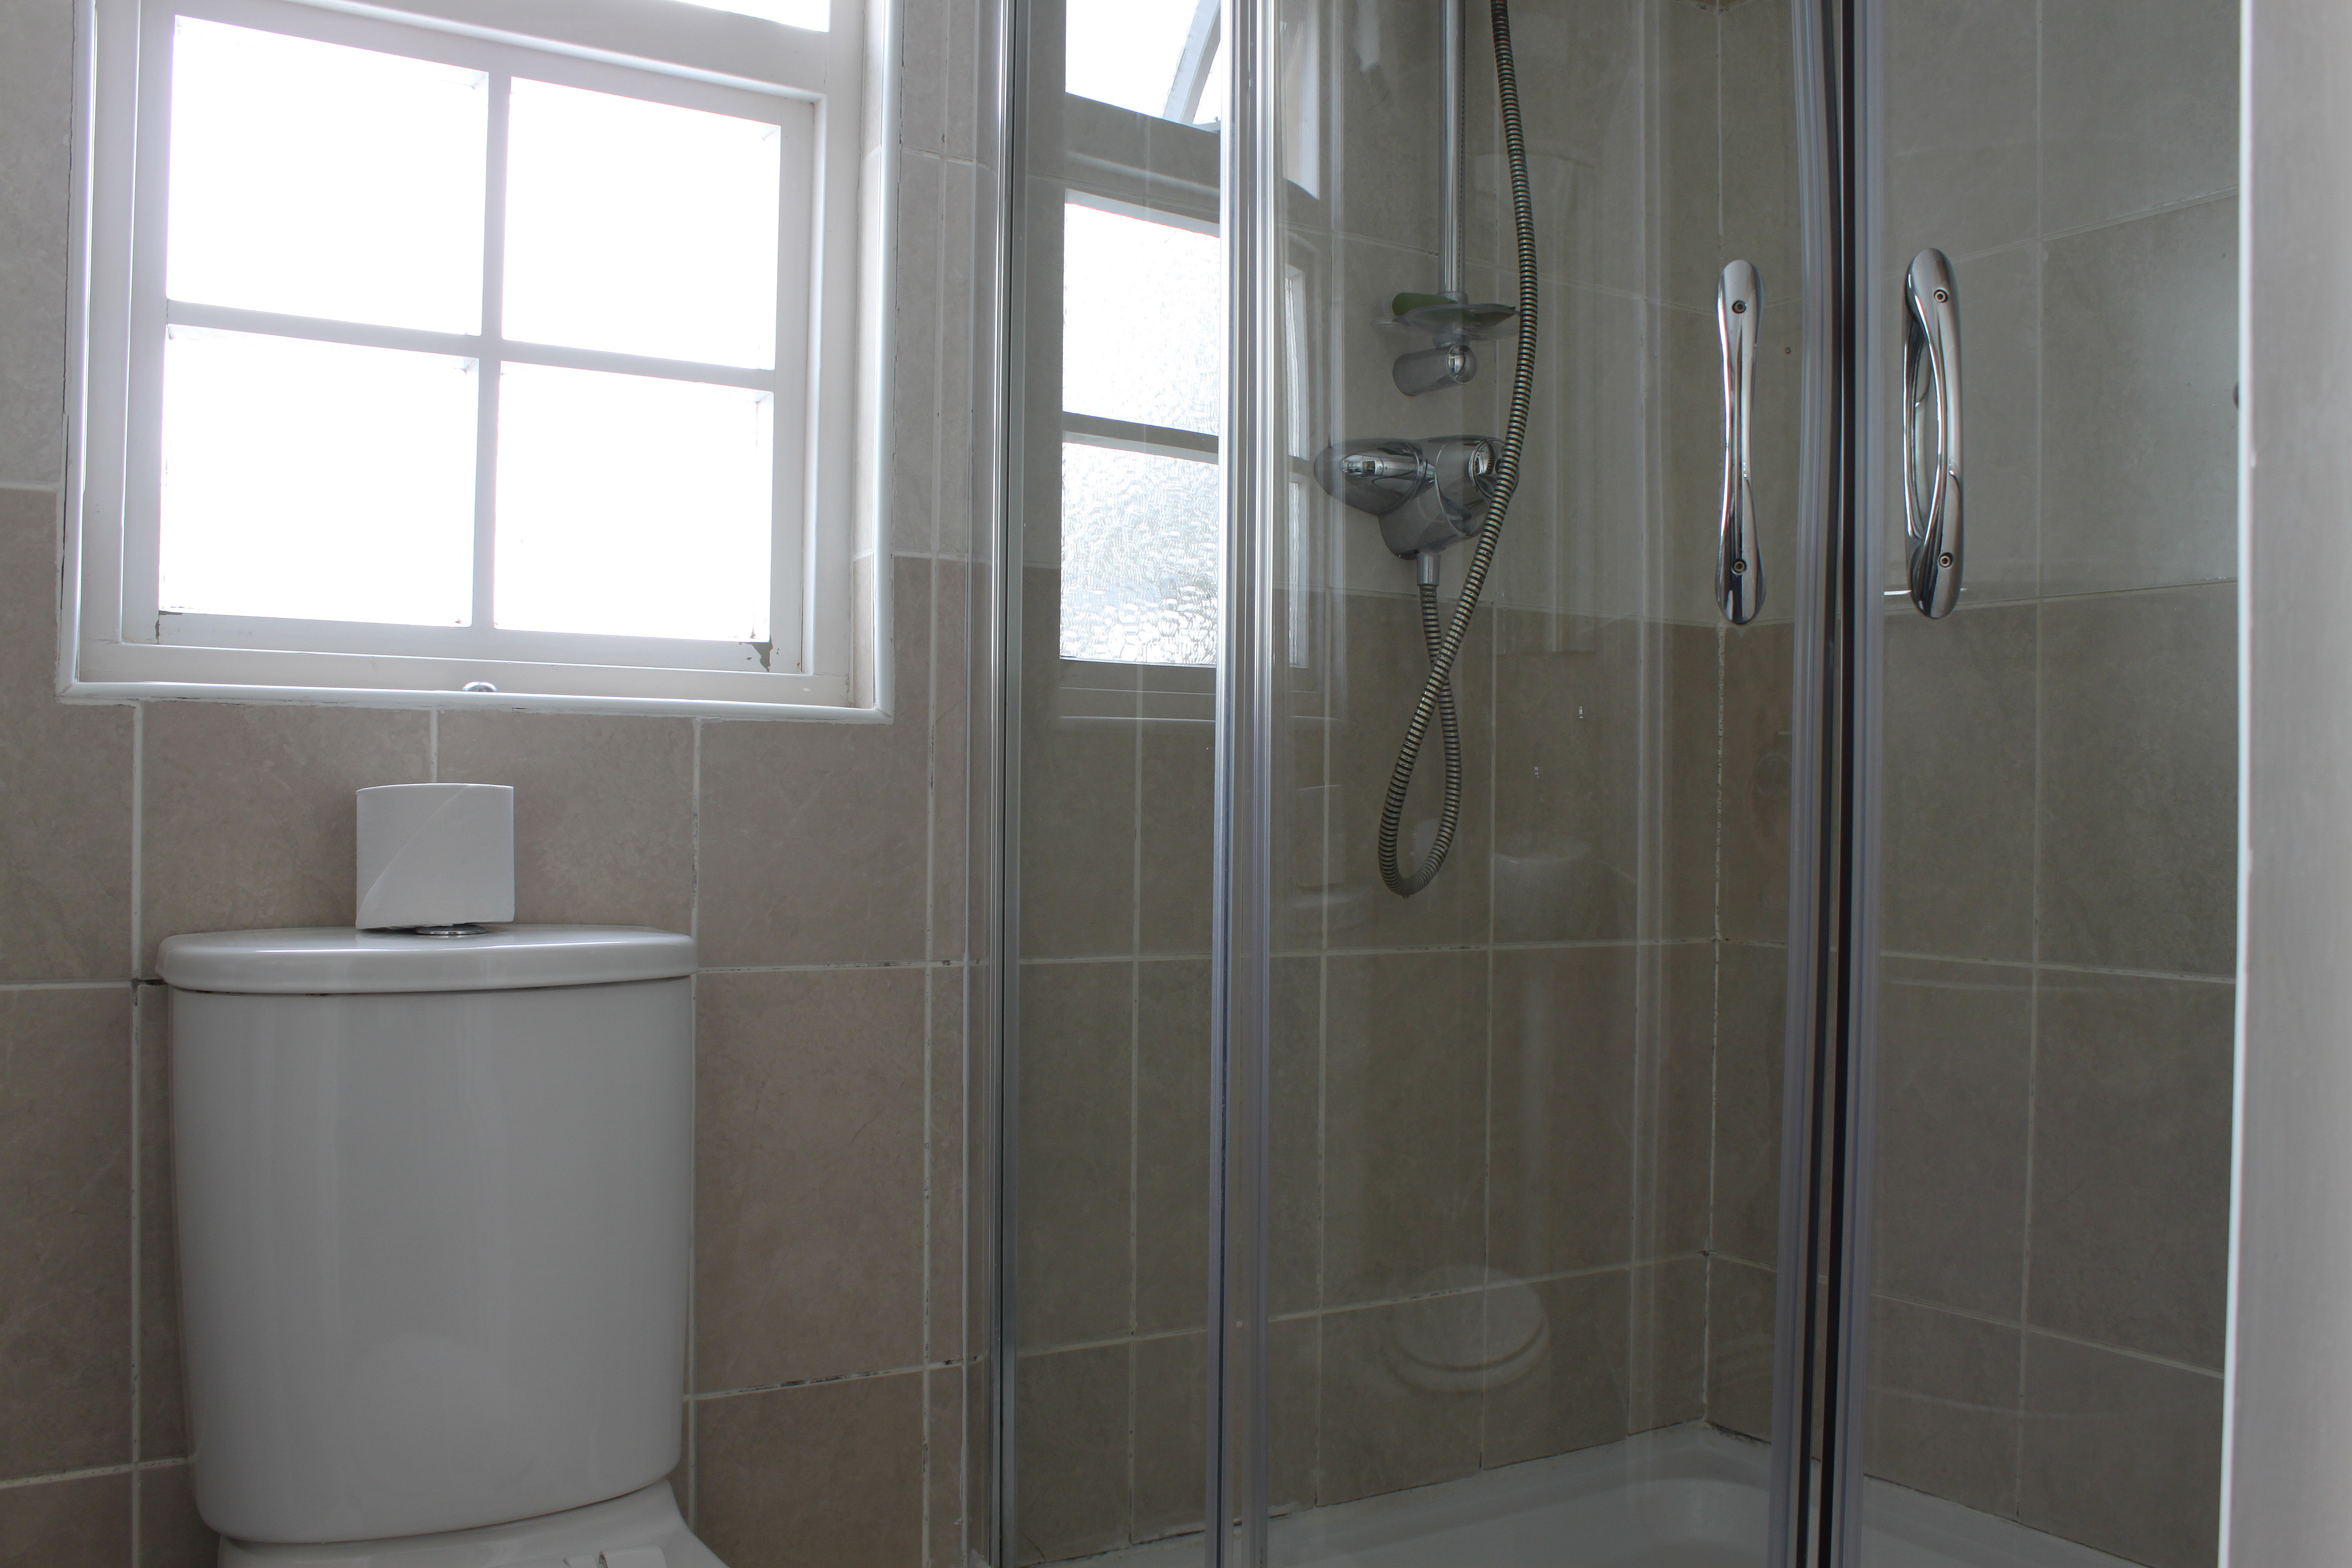 Ensuite with shower, sink and toilet